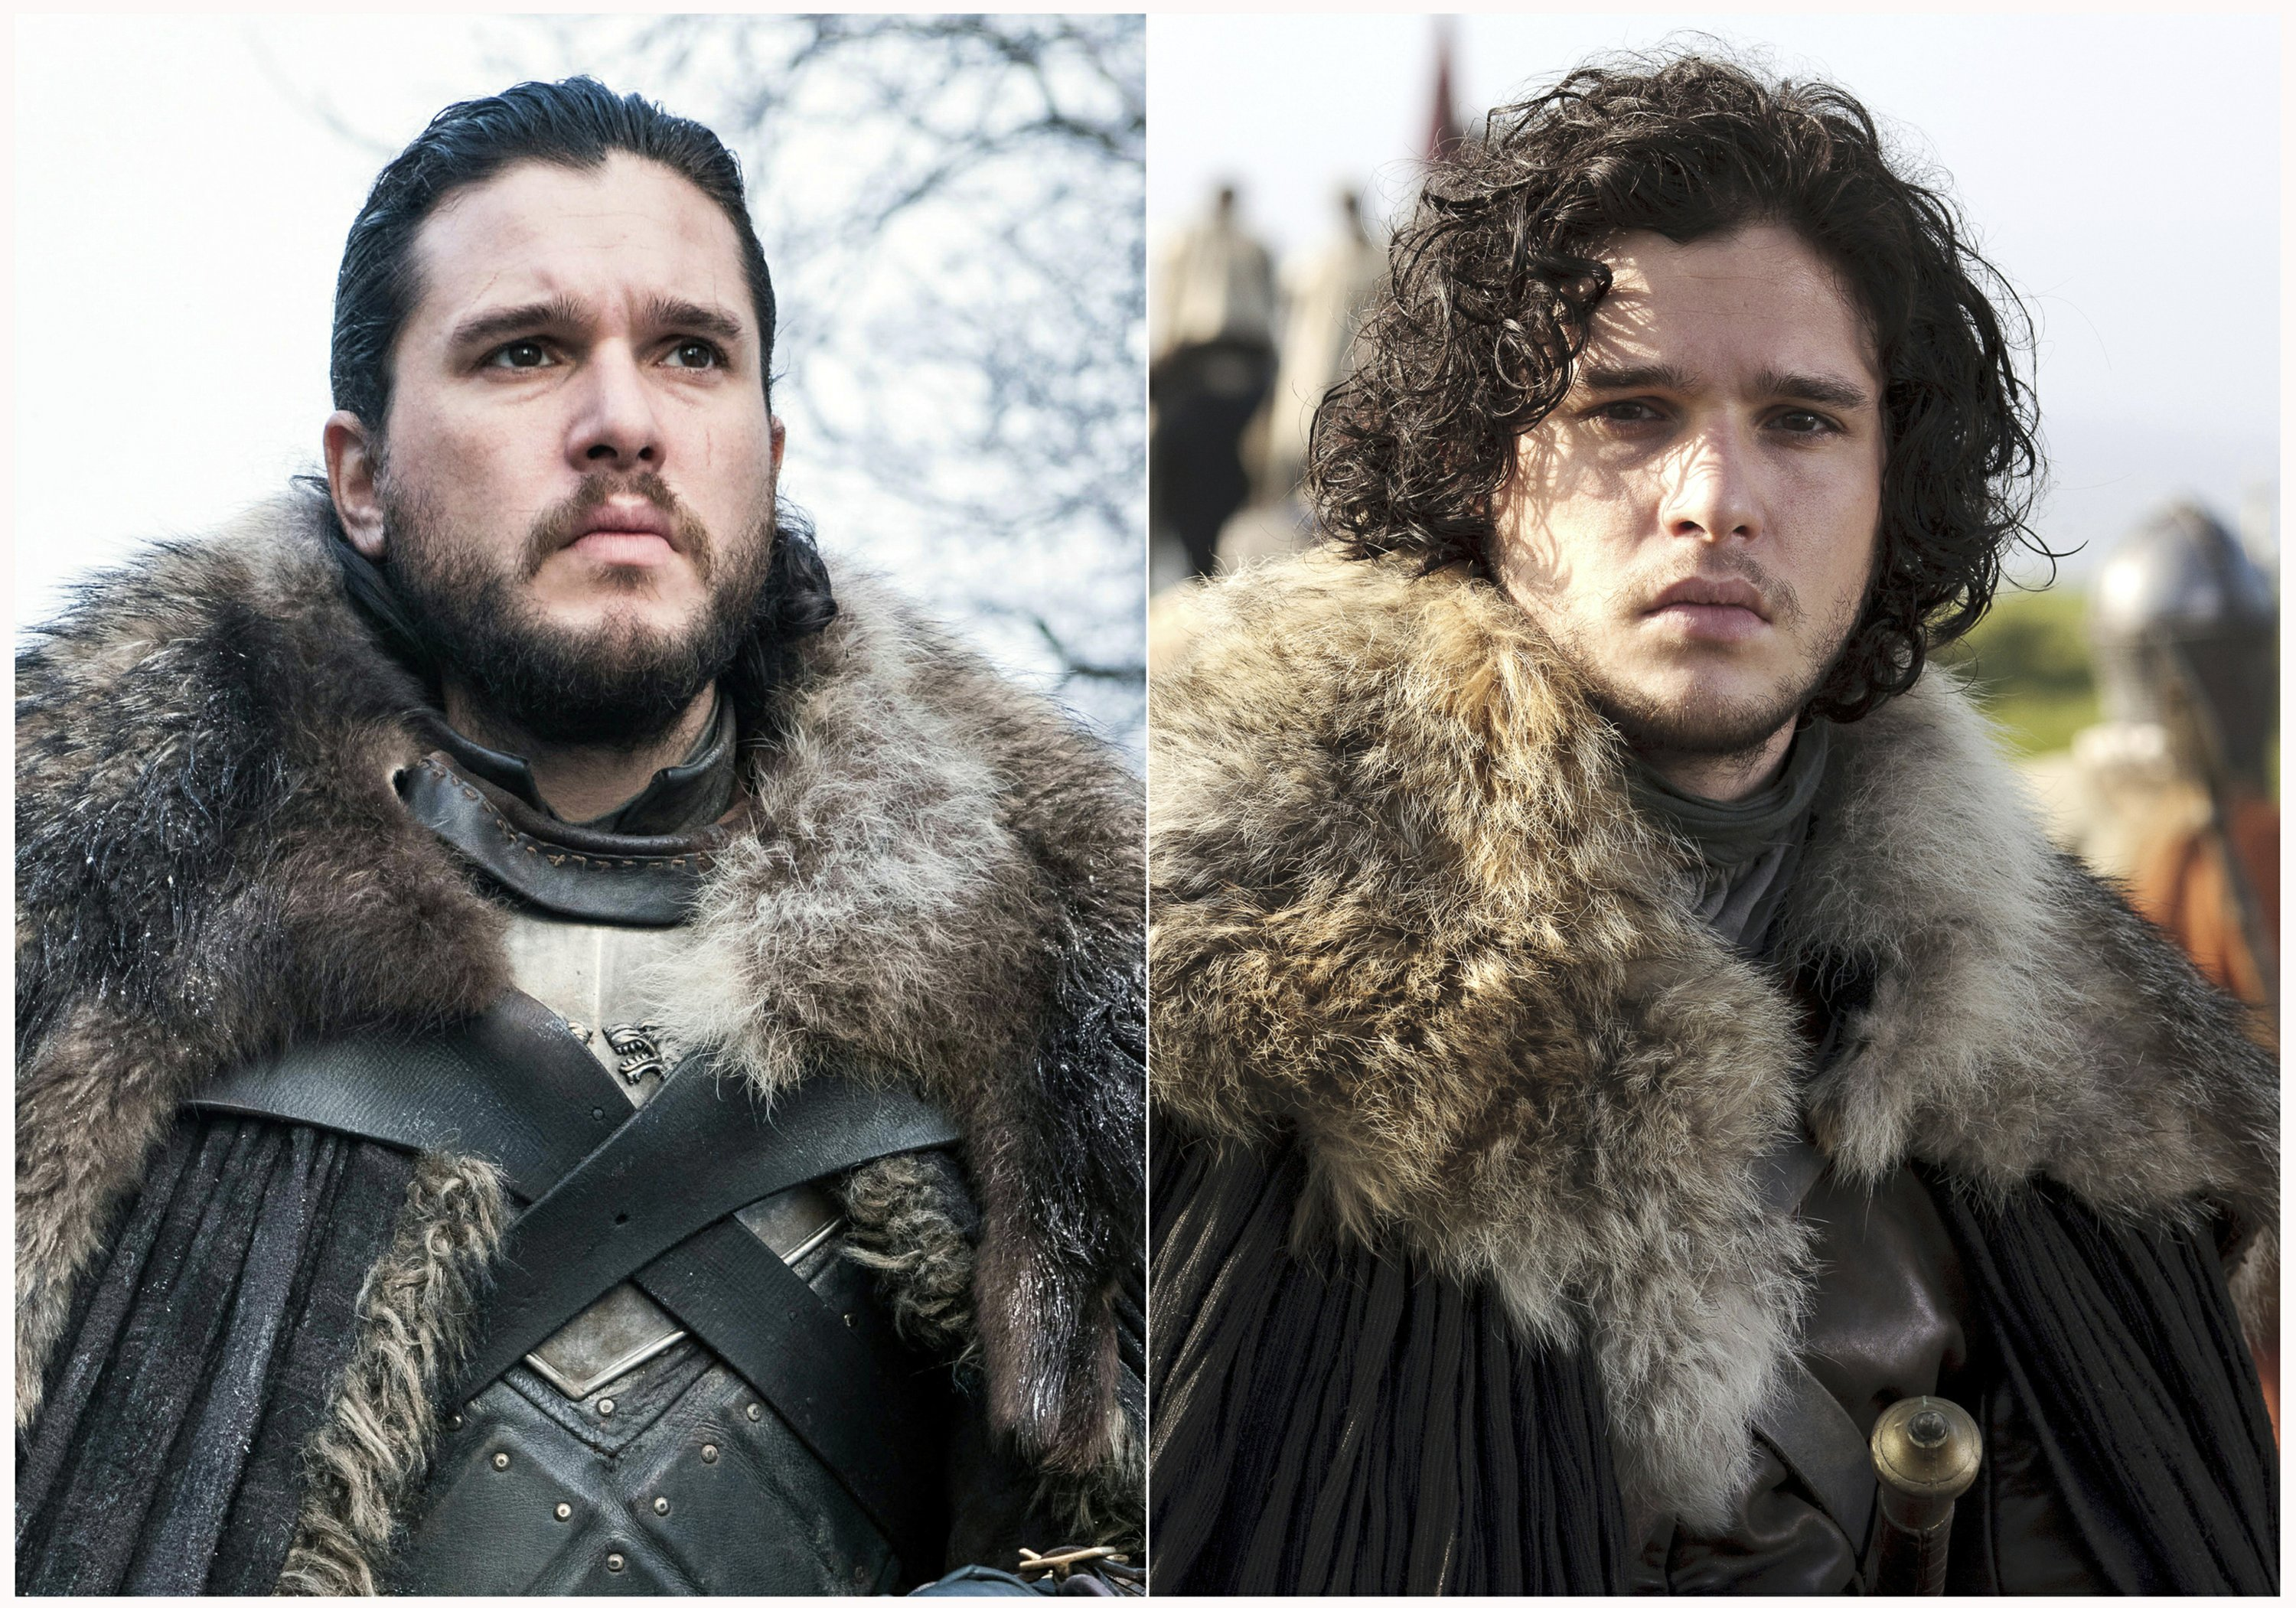 Fire, ice and puberty: How 'Thrones' characters have grown